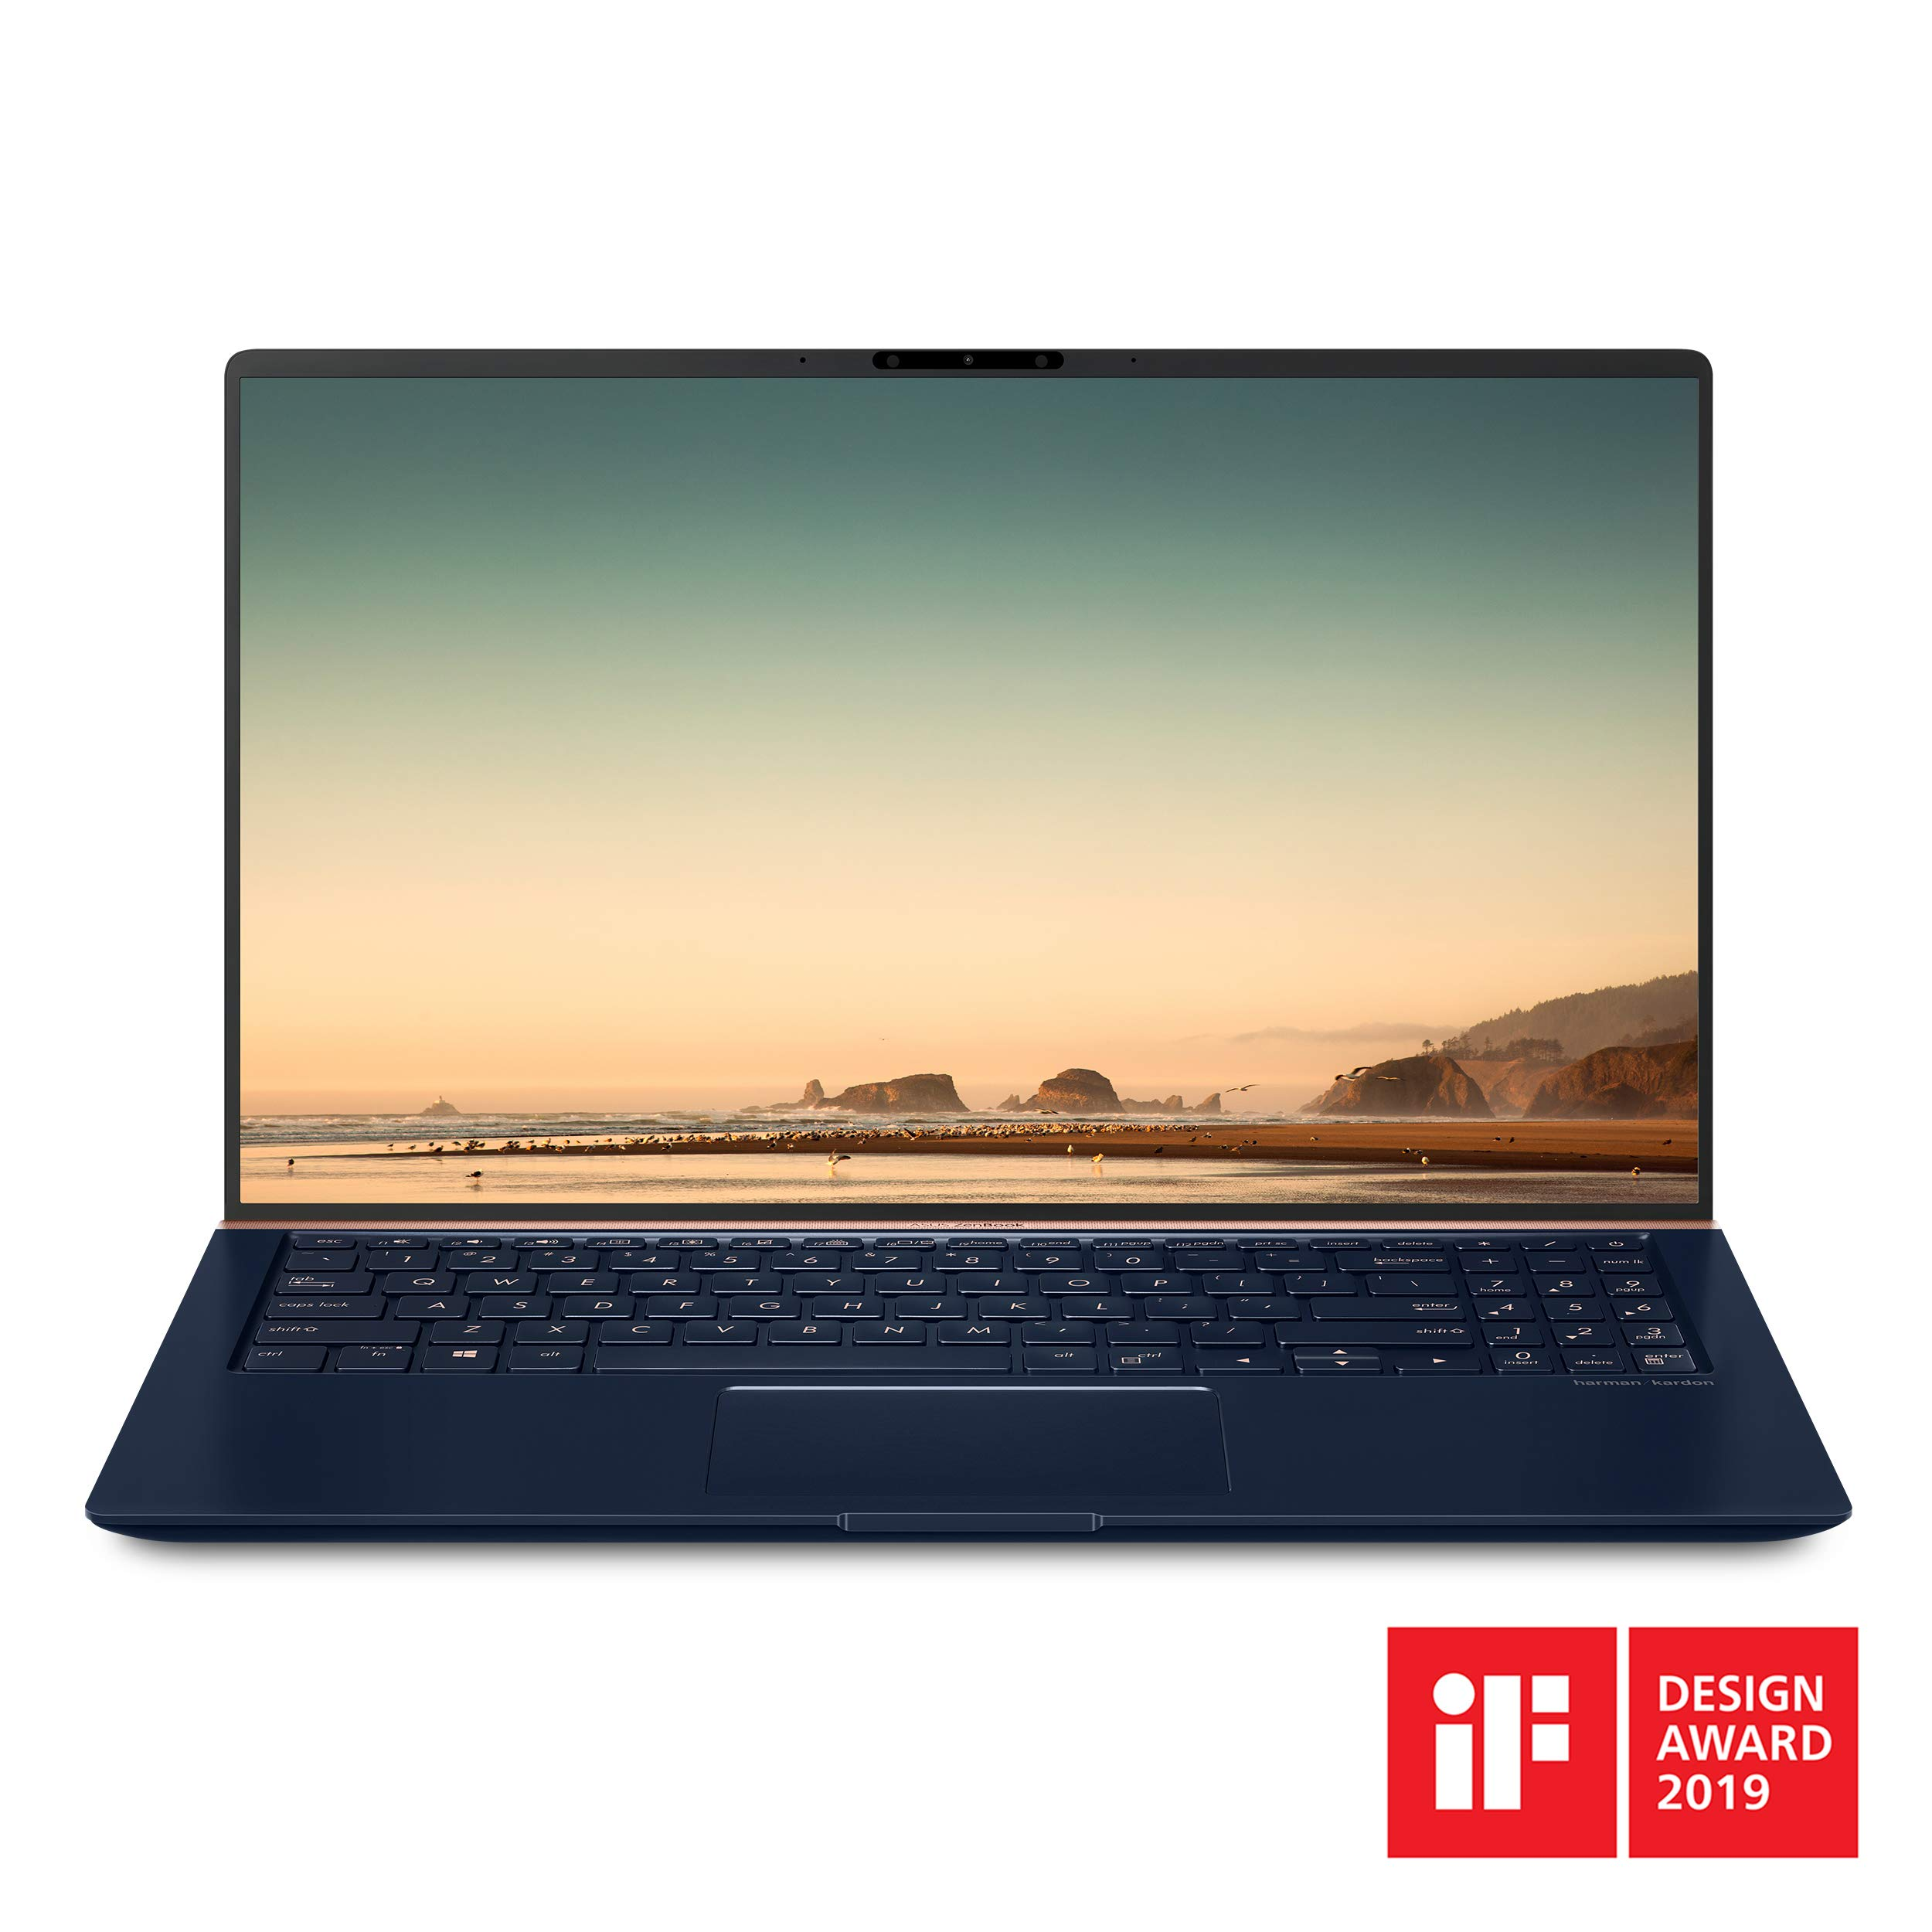 Asus ZenBook 15 Ultra Slim Compact Laptop 15.6'' FHD 4-Way NanoEdge, Intel Core i7-8565U Processor, 16GB DDR4, 512GB PCIe SSD, GeForce GTX 1050, Ir Camera, Windows 10, UX533FD-DH74, Royal Blue by ASUS